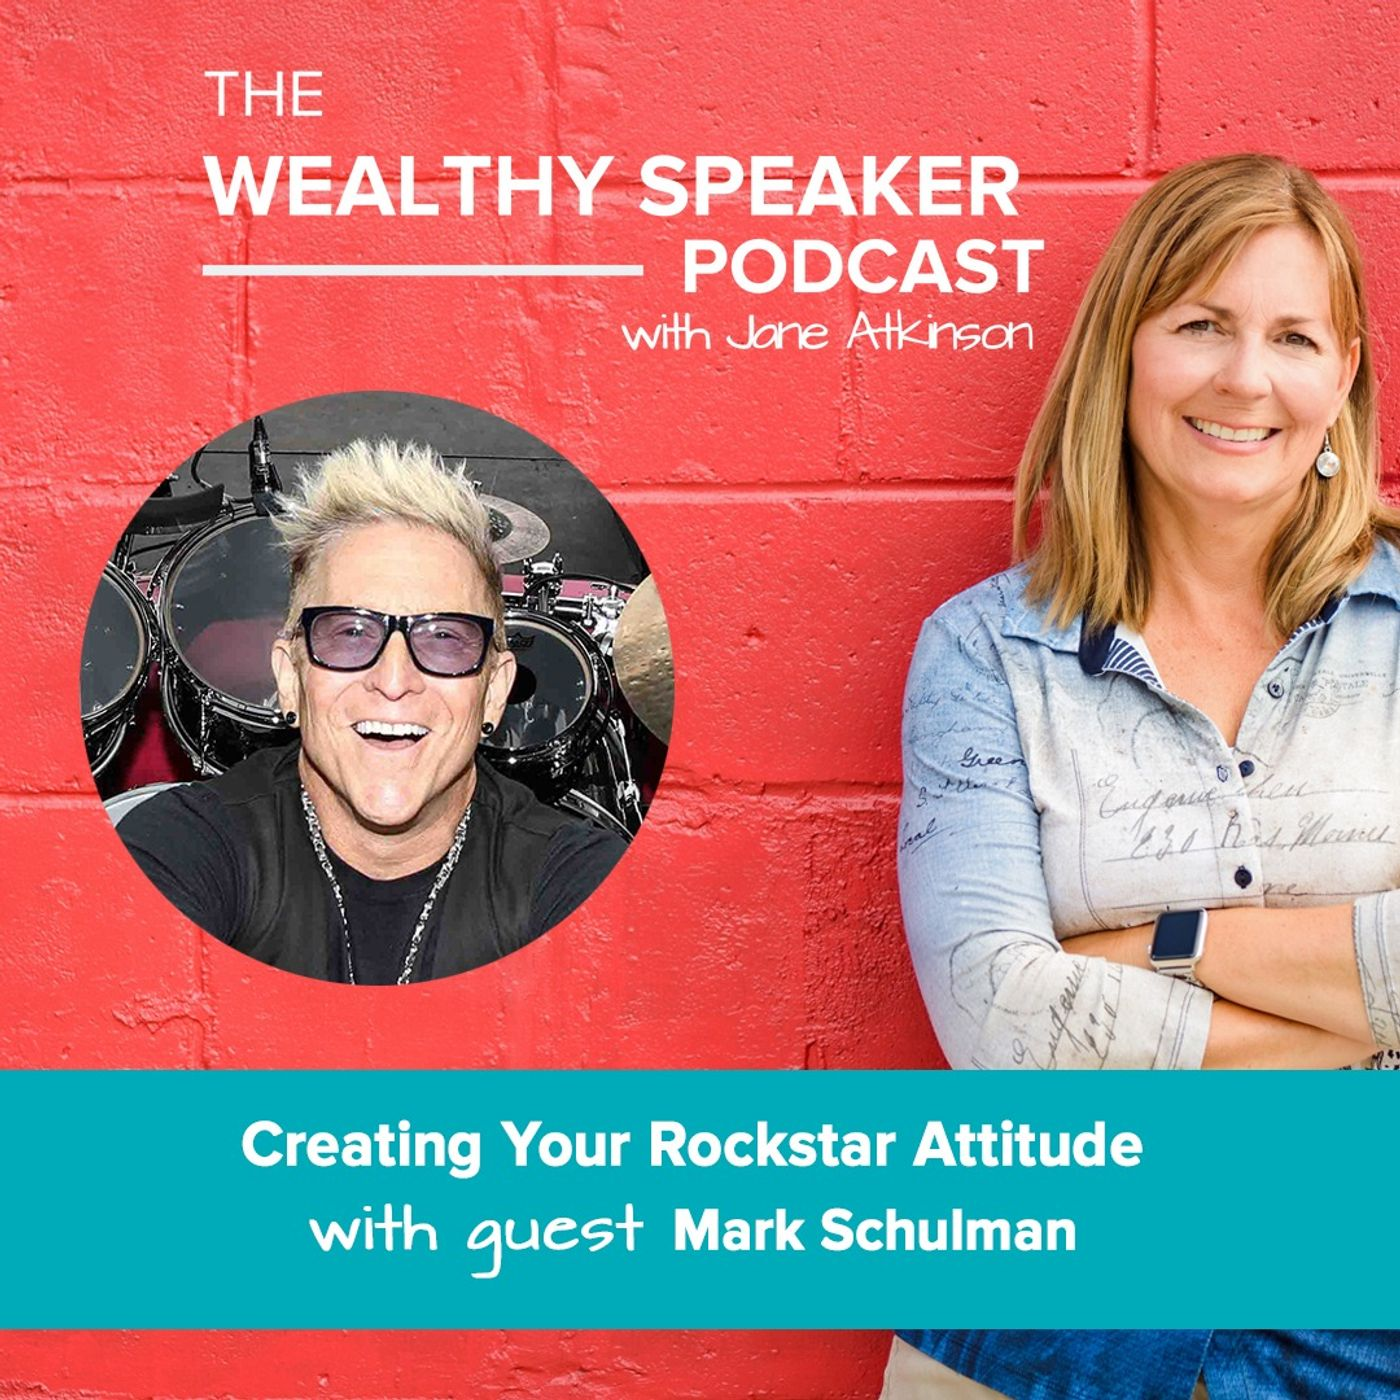 The Wealthy Speaker Podcast with Mark Schulman